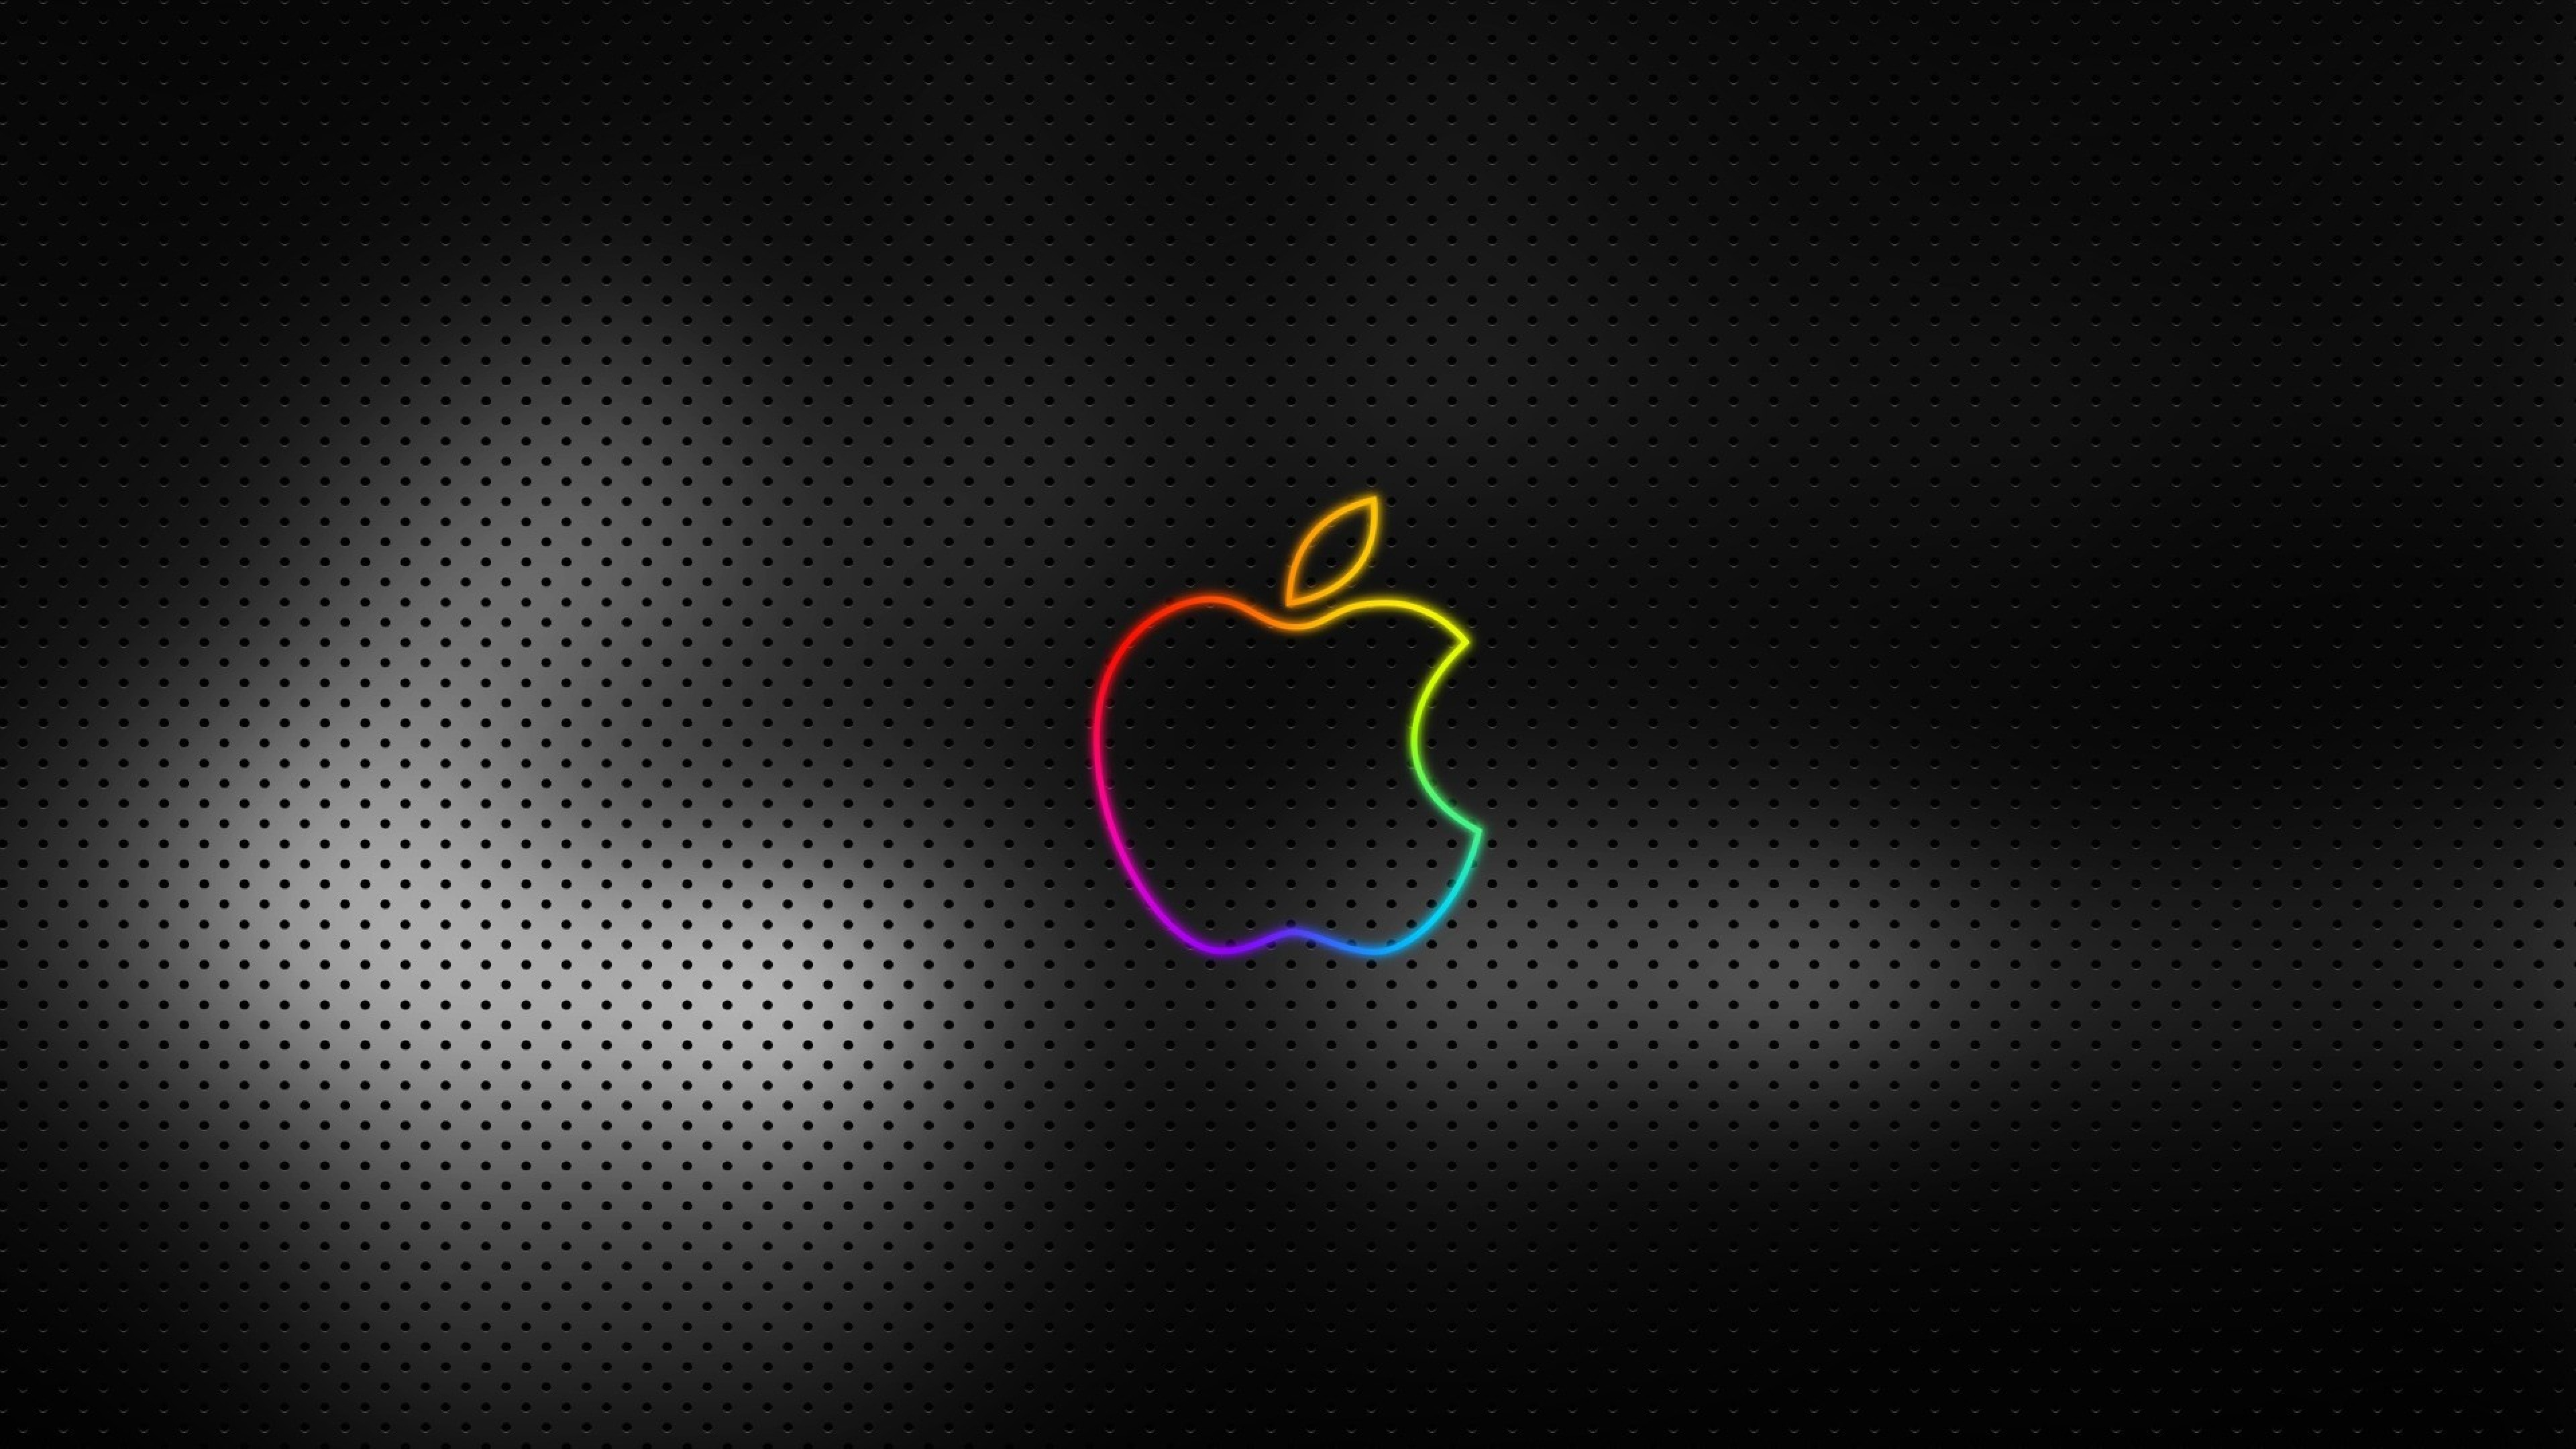 Apple Backgrounds download 3840x2160